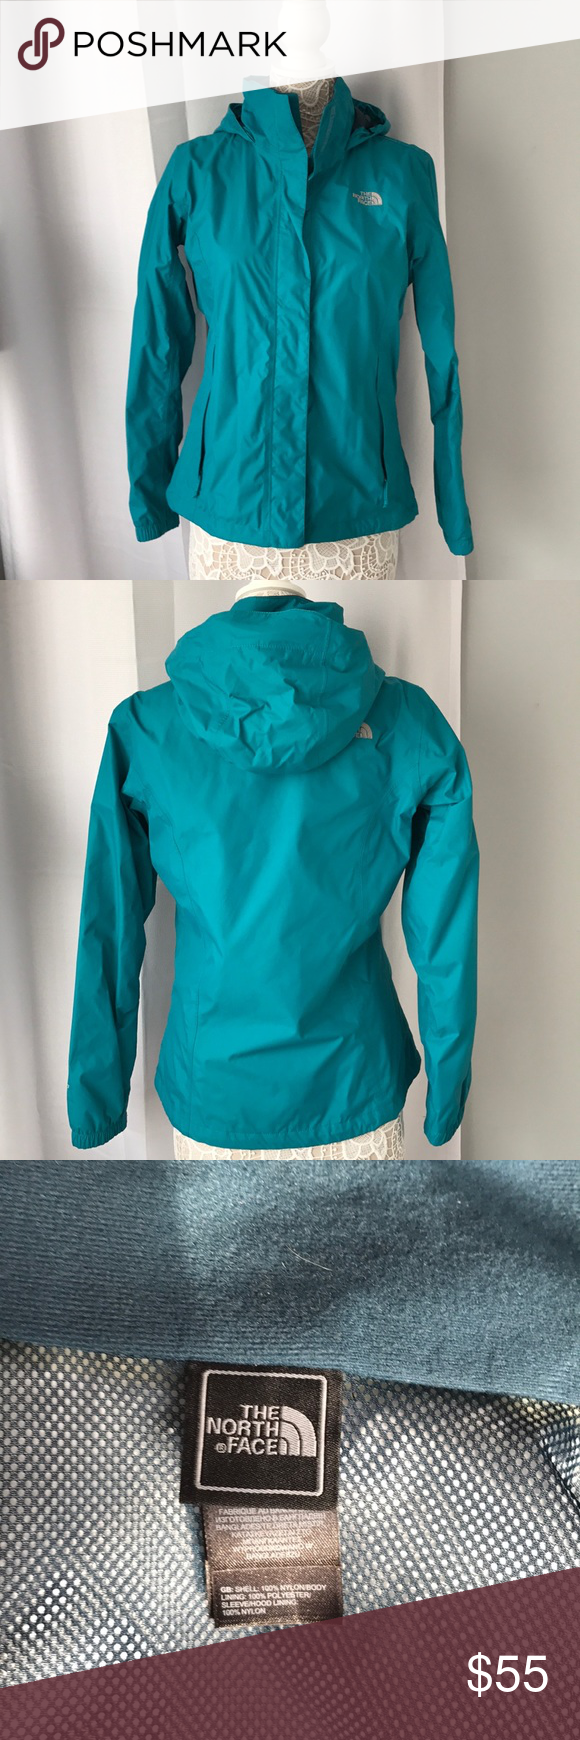 4c38e334d germany north face rain jacket pinterest 51c88 a0b2f